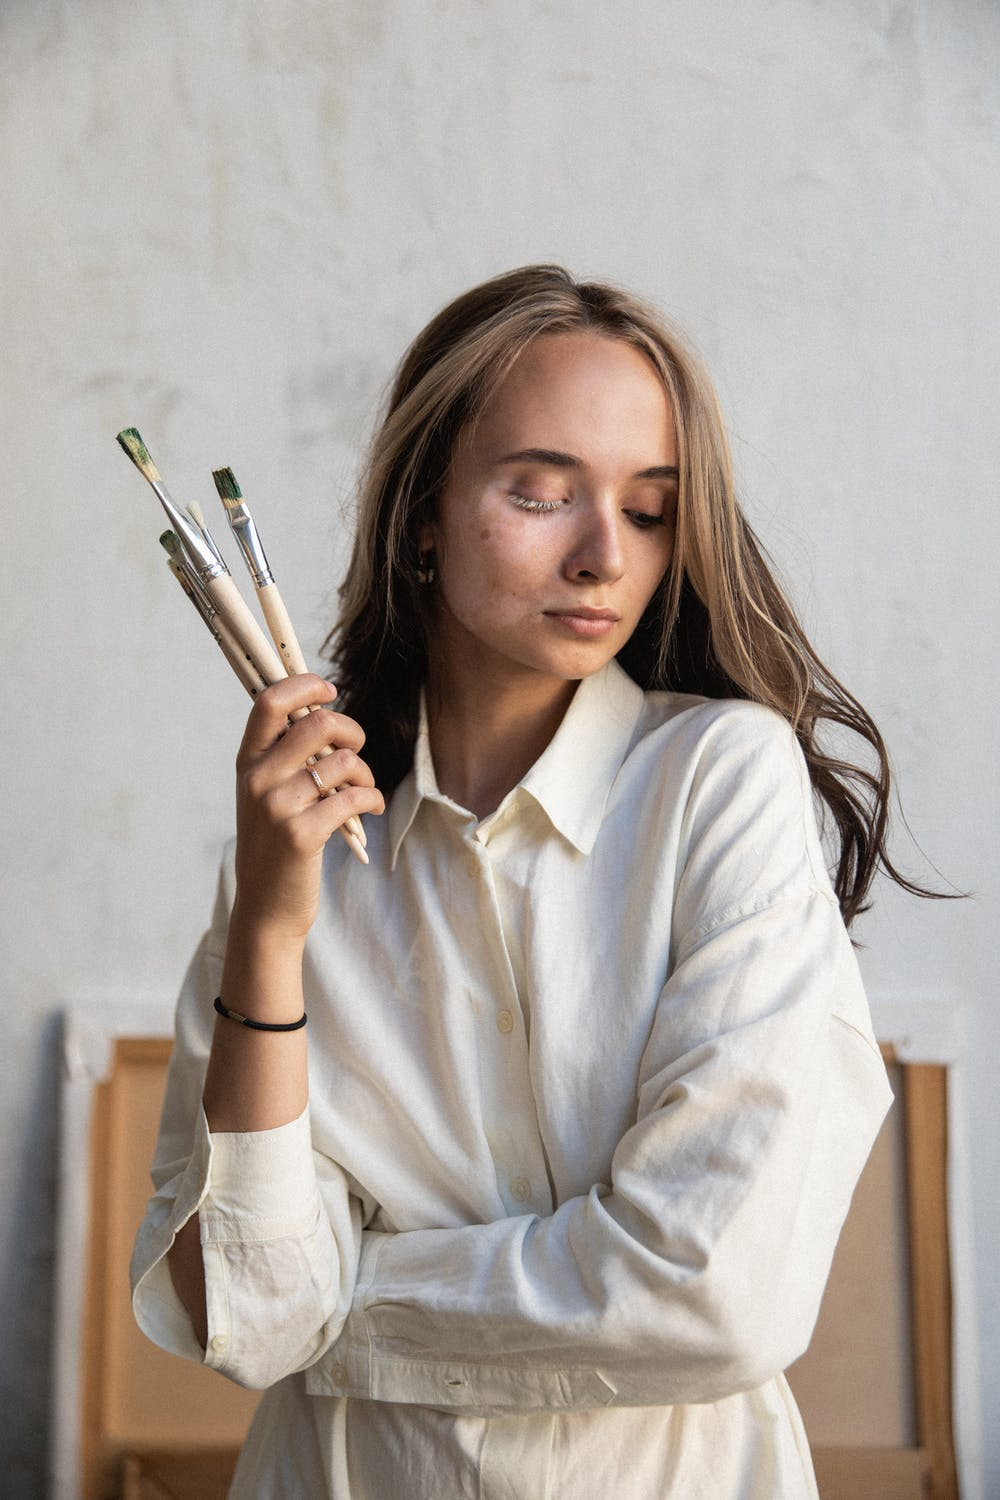 Woman with paint brushes | Source: Pexels